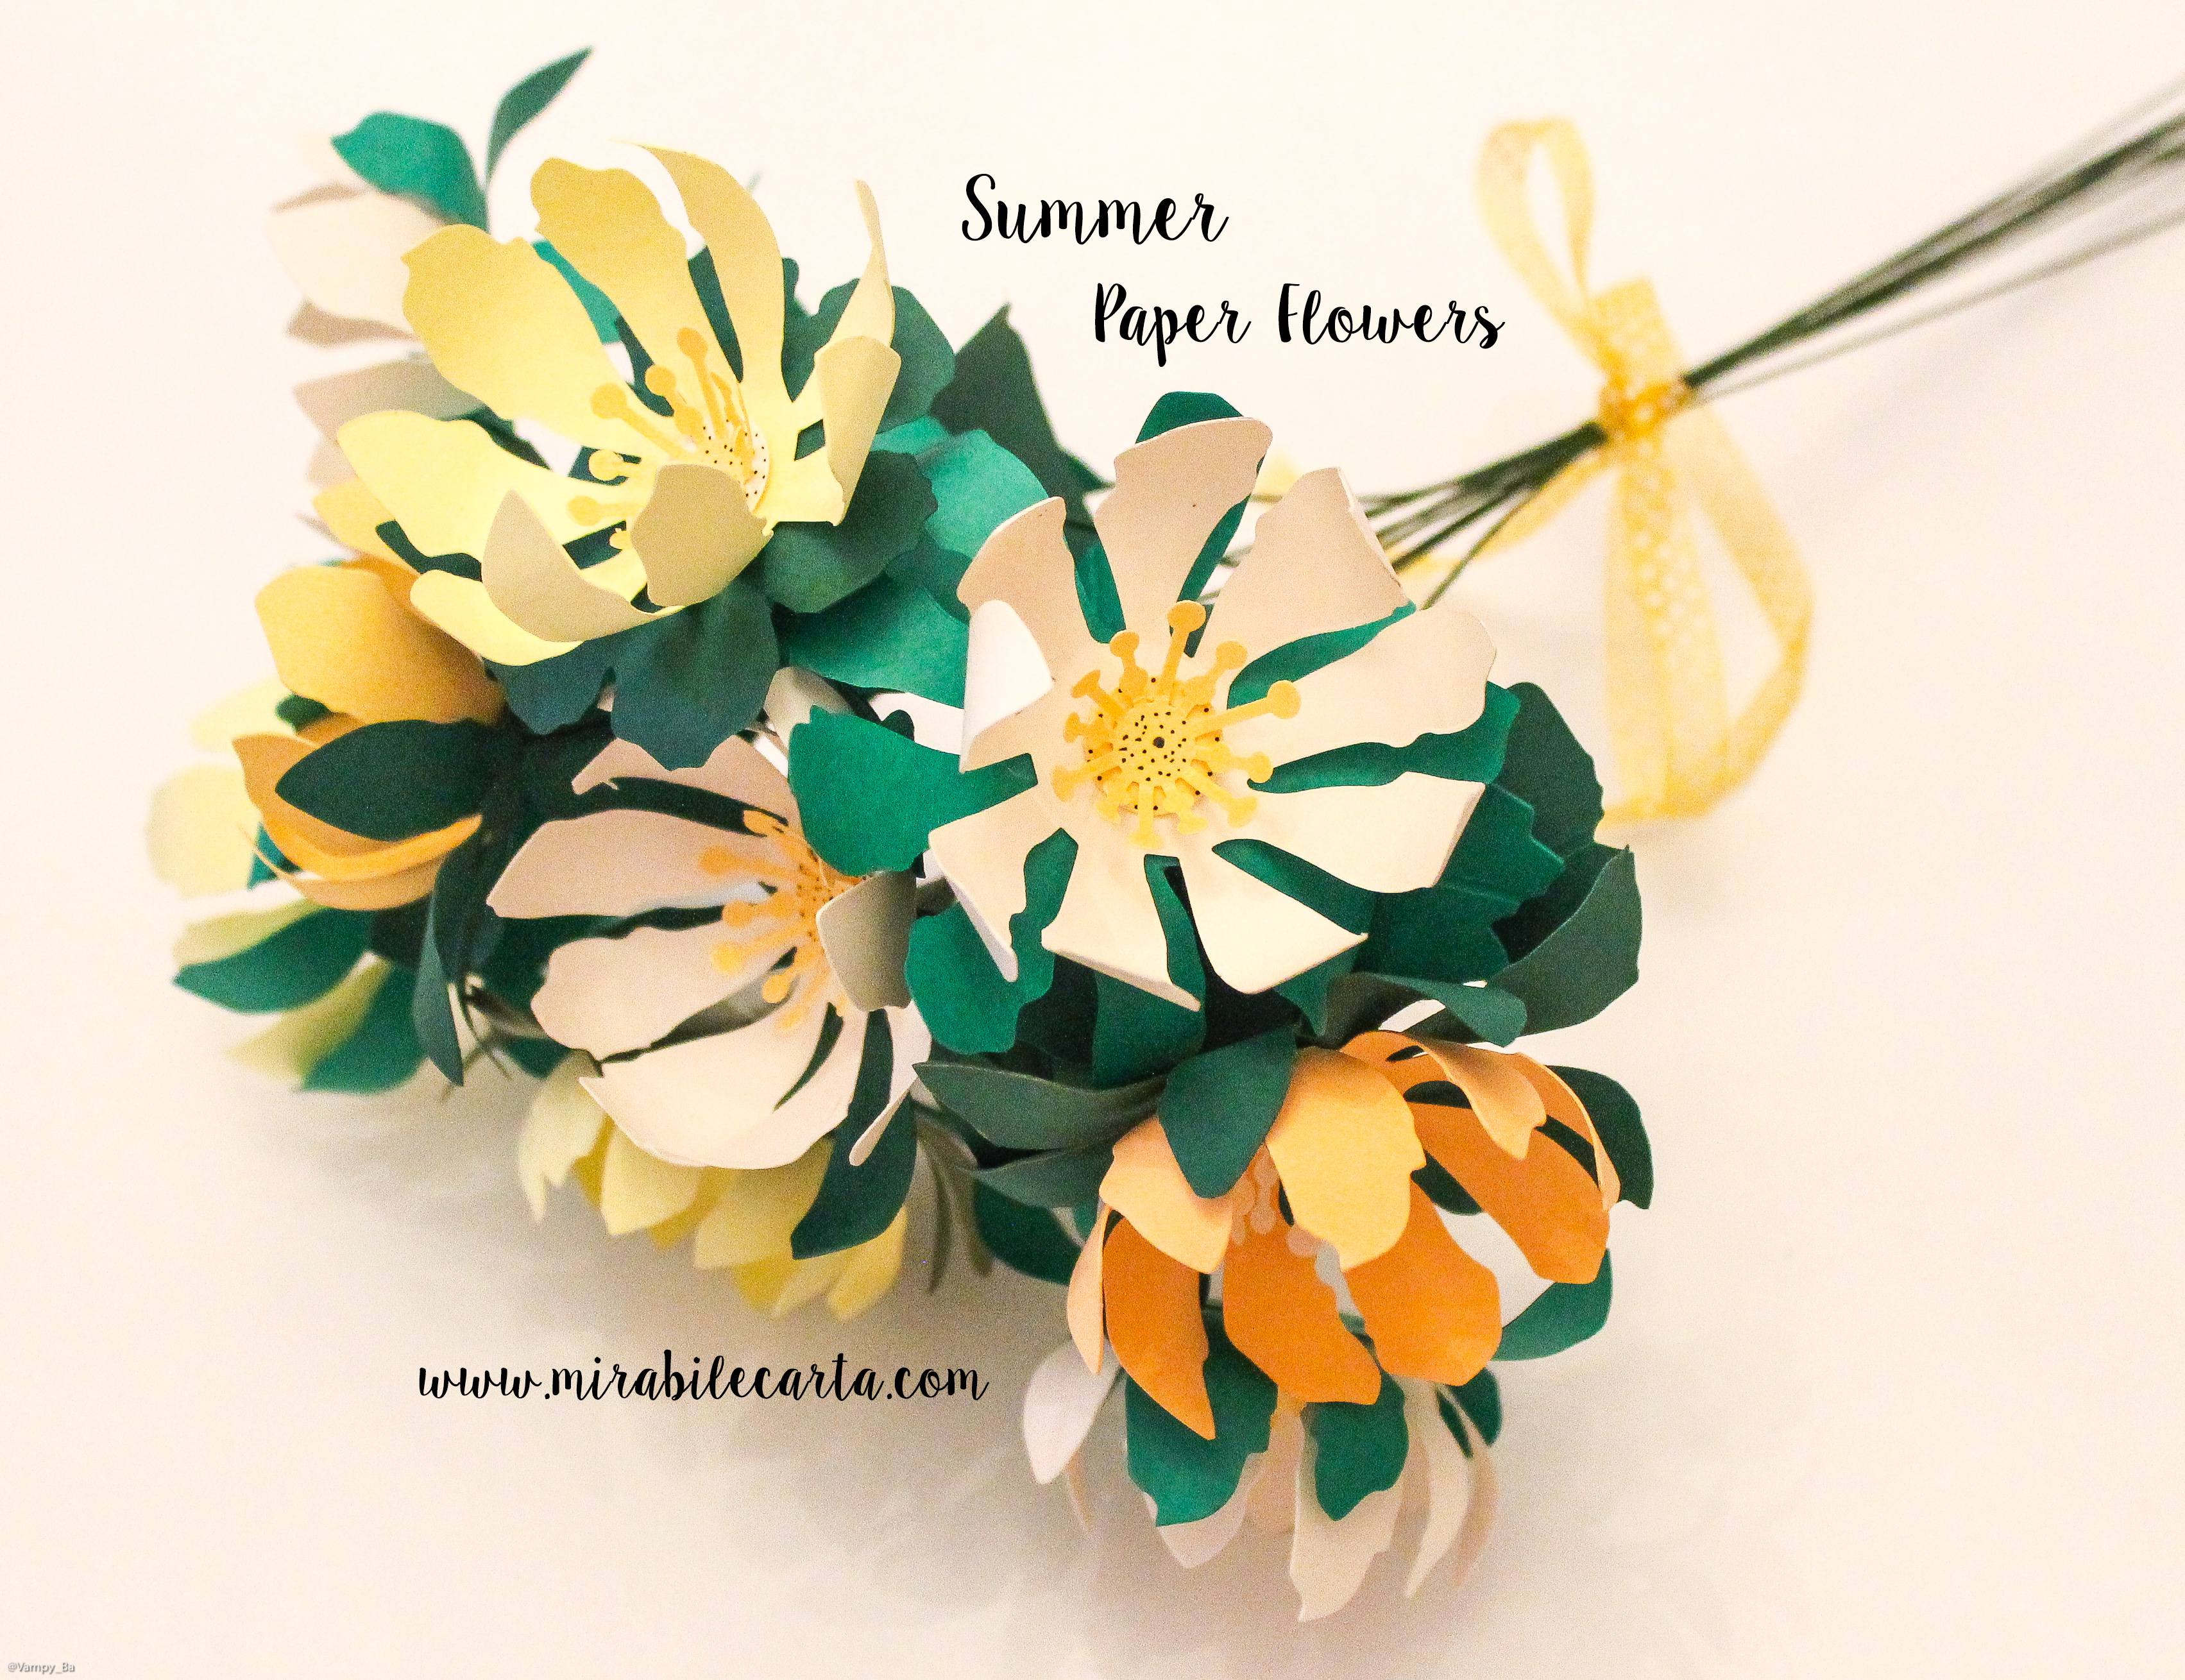 SummerPaperFlowers_mirabilecarta29.jpg